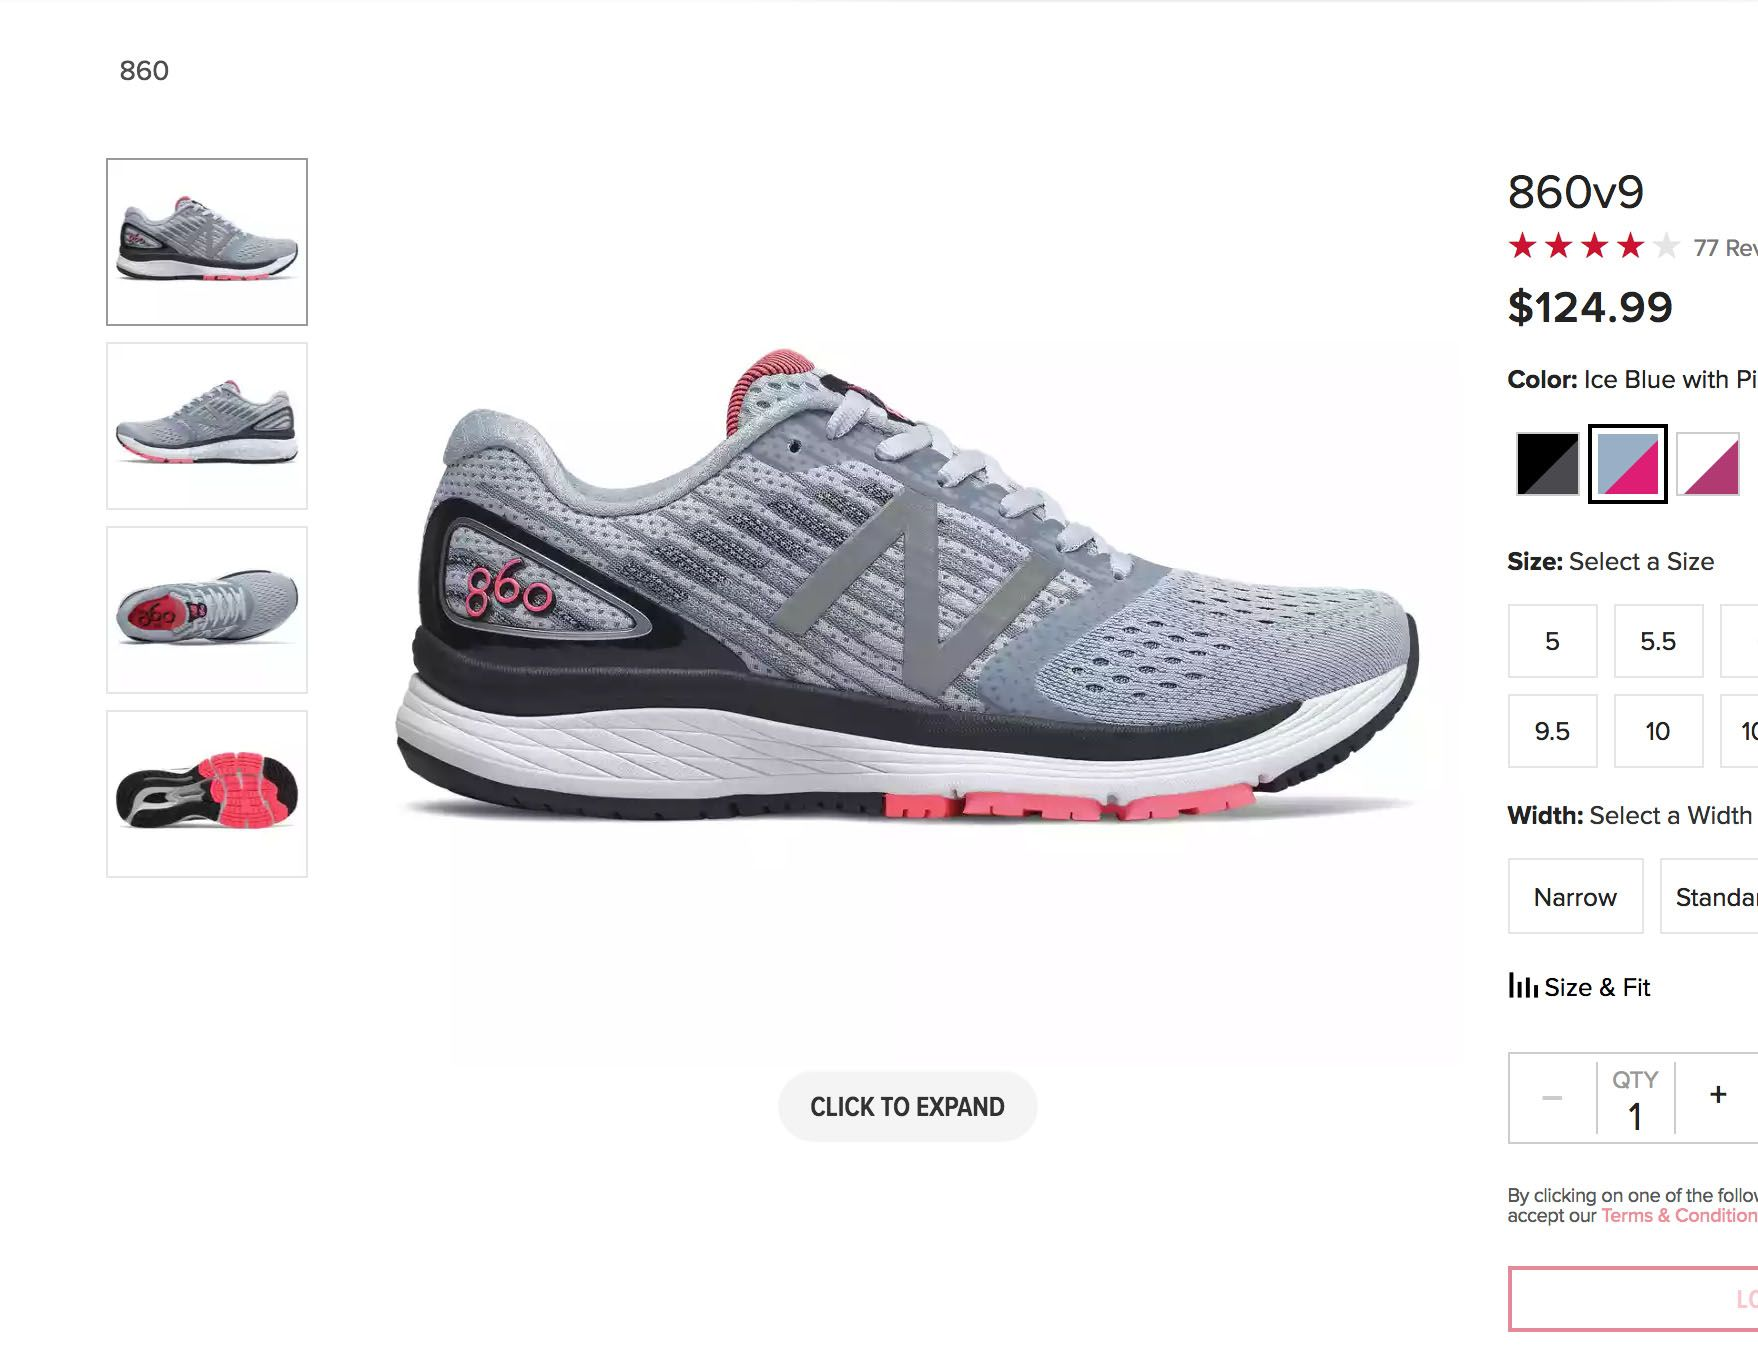 Running Stability Overpronation 2019 ShoesFor Overpronation 2019 Stability Running Stability ShoesFor Rq5Sc4AjL3